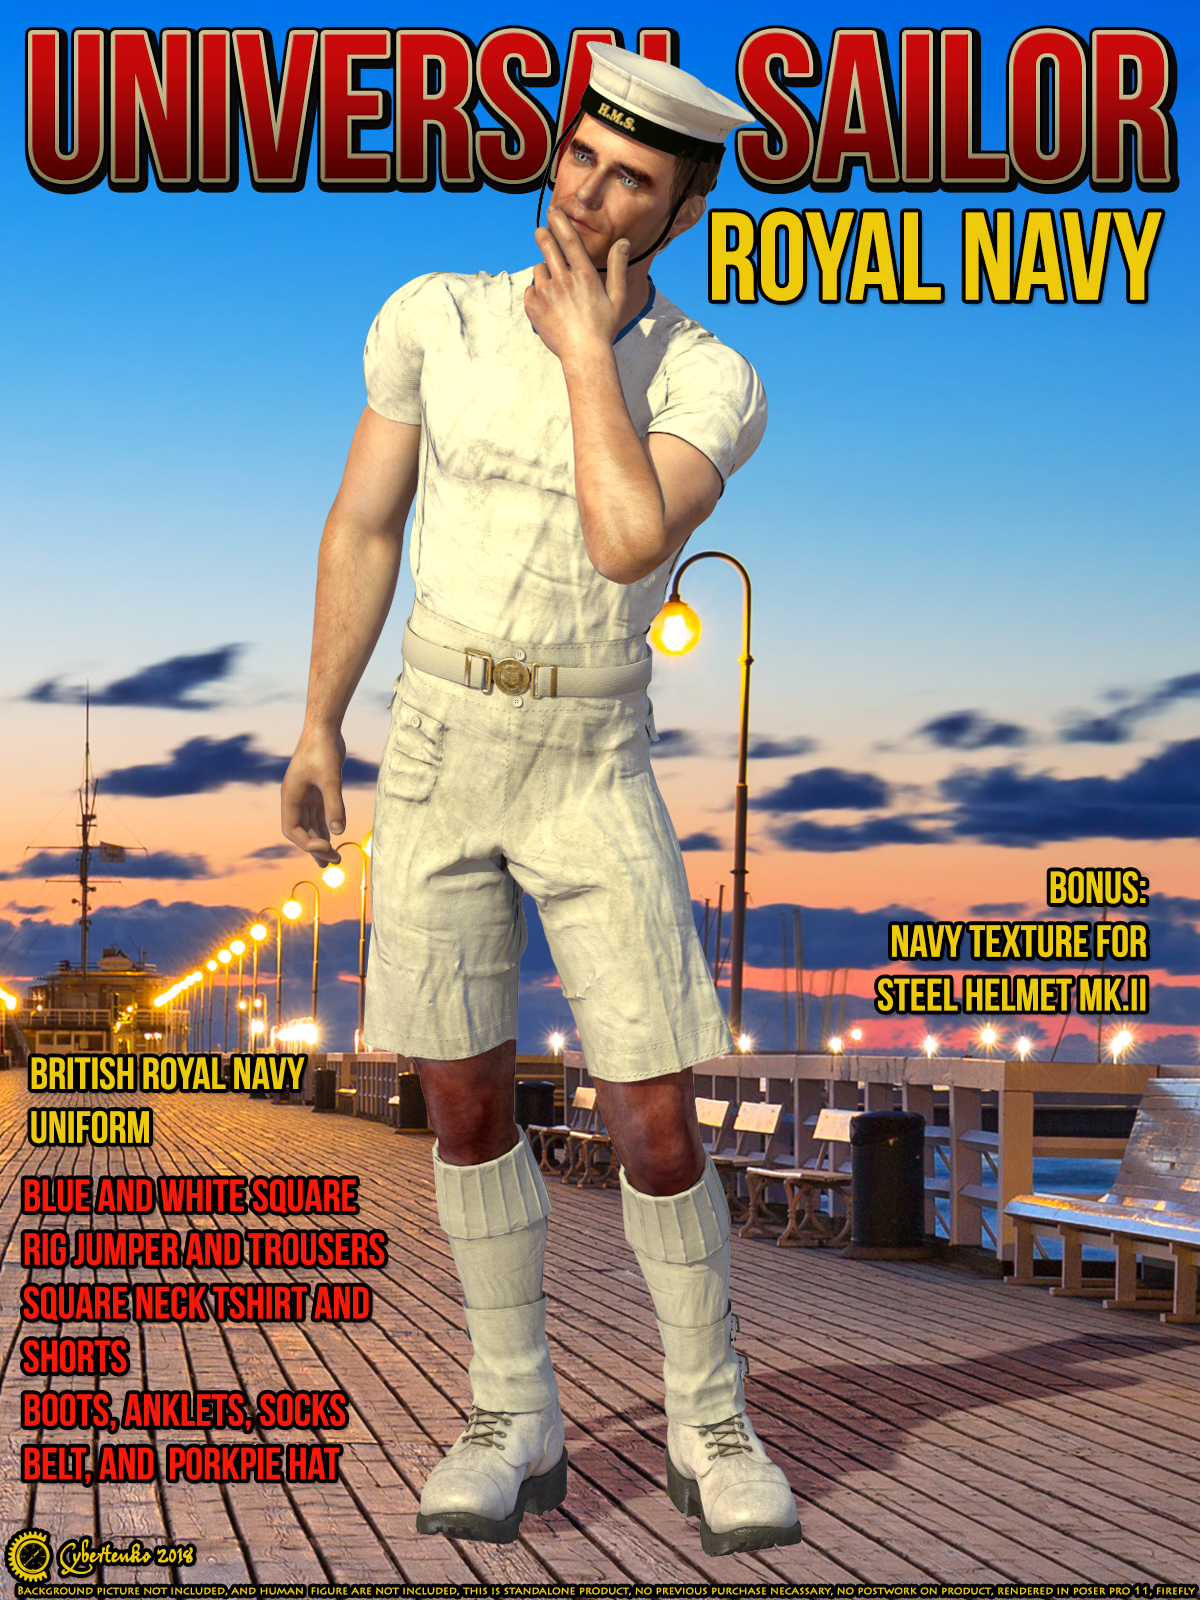 Universal Sailor - Royal Navy by Cybertenko